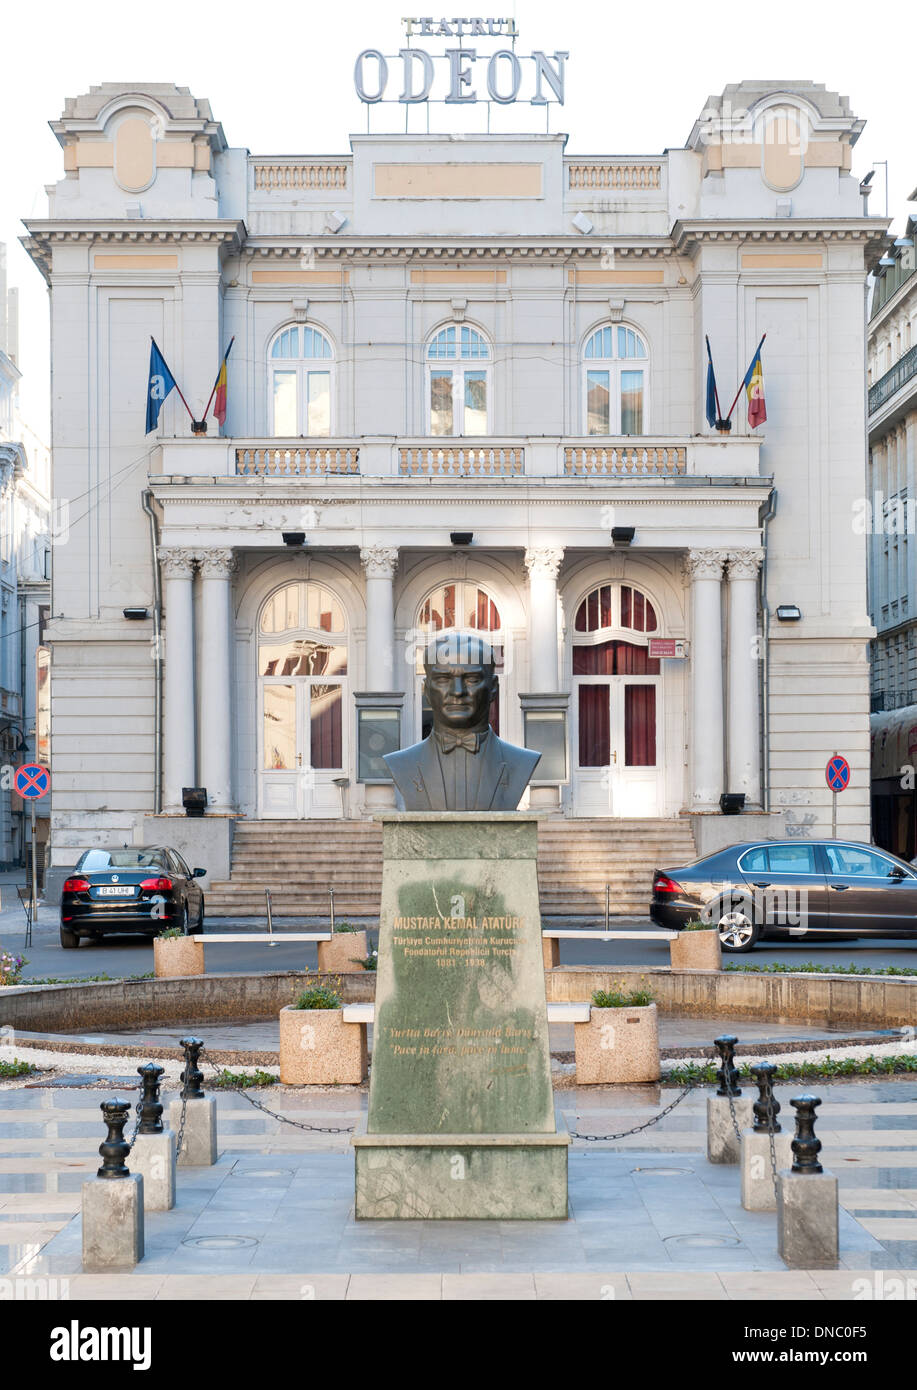 The Odeon Theatre (Teatrul Odeon) in Bucharest, the capital of Romania. Stock Photo